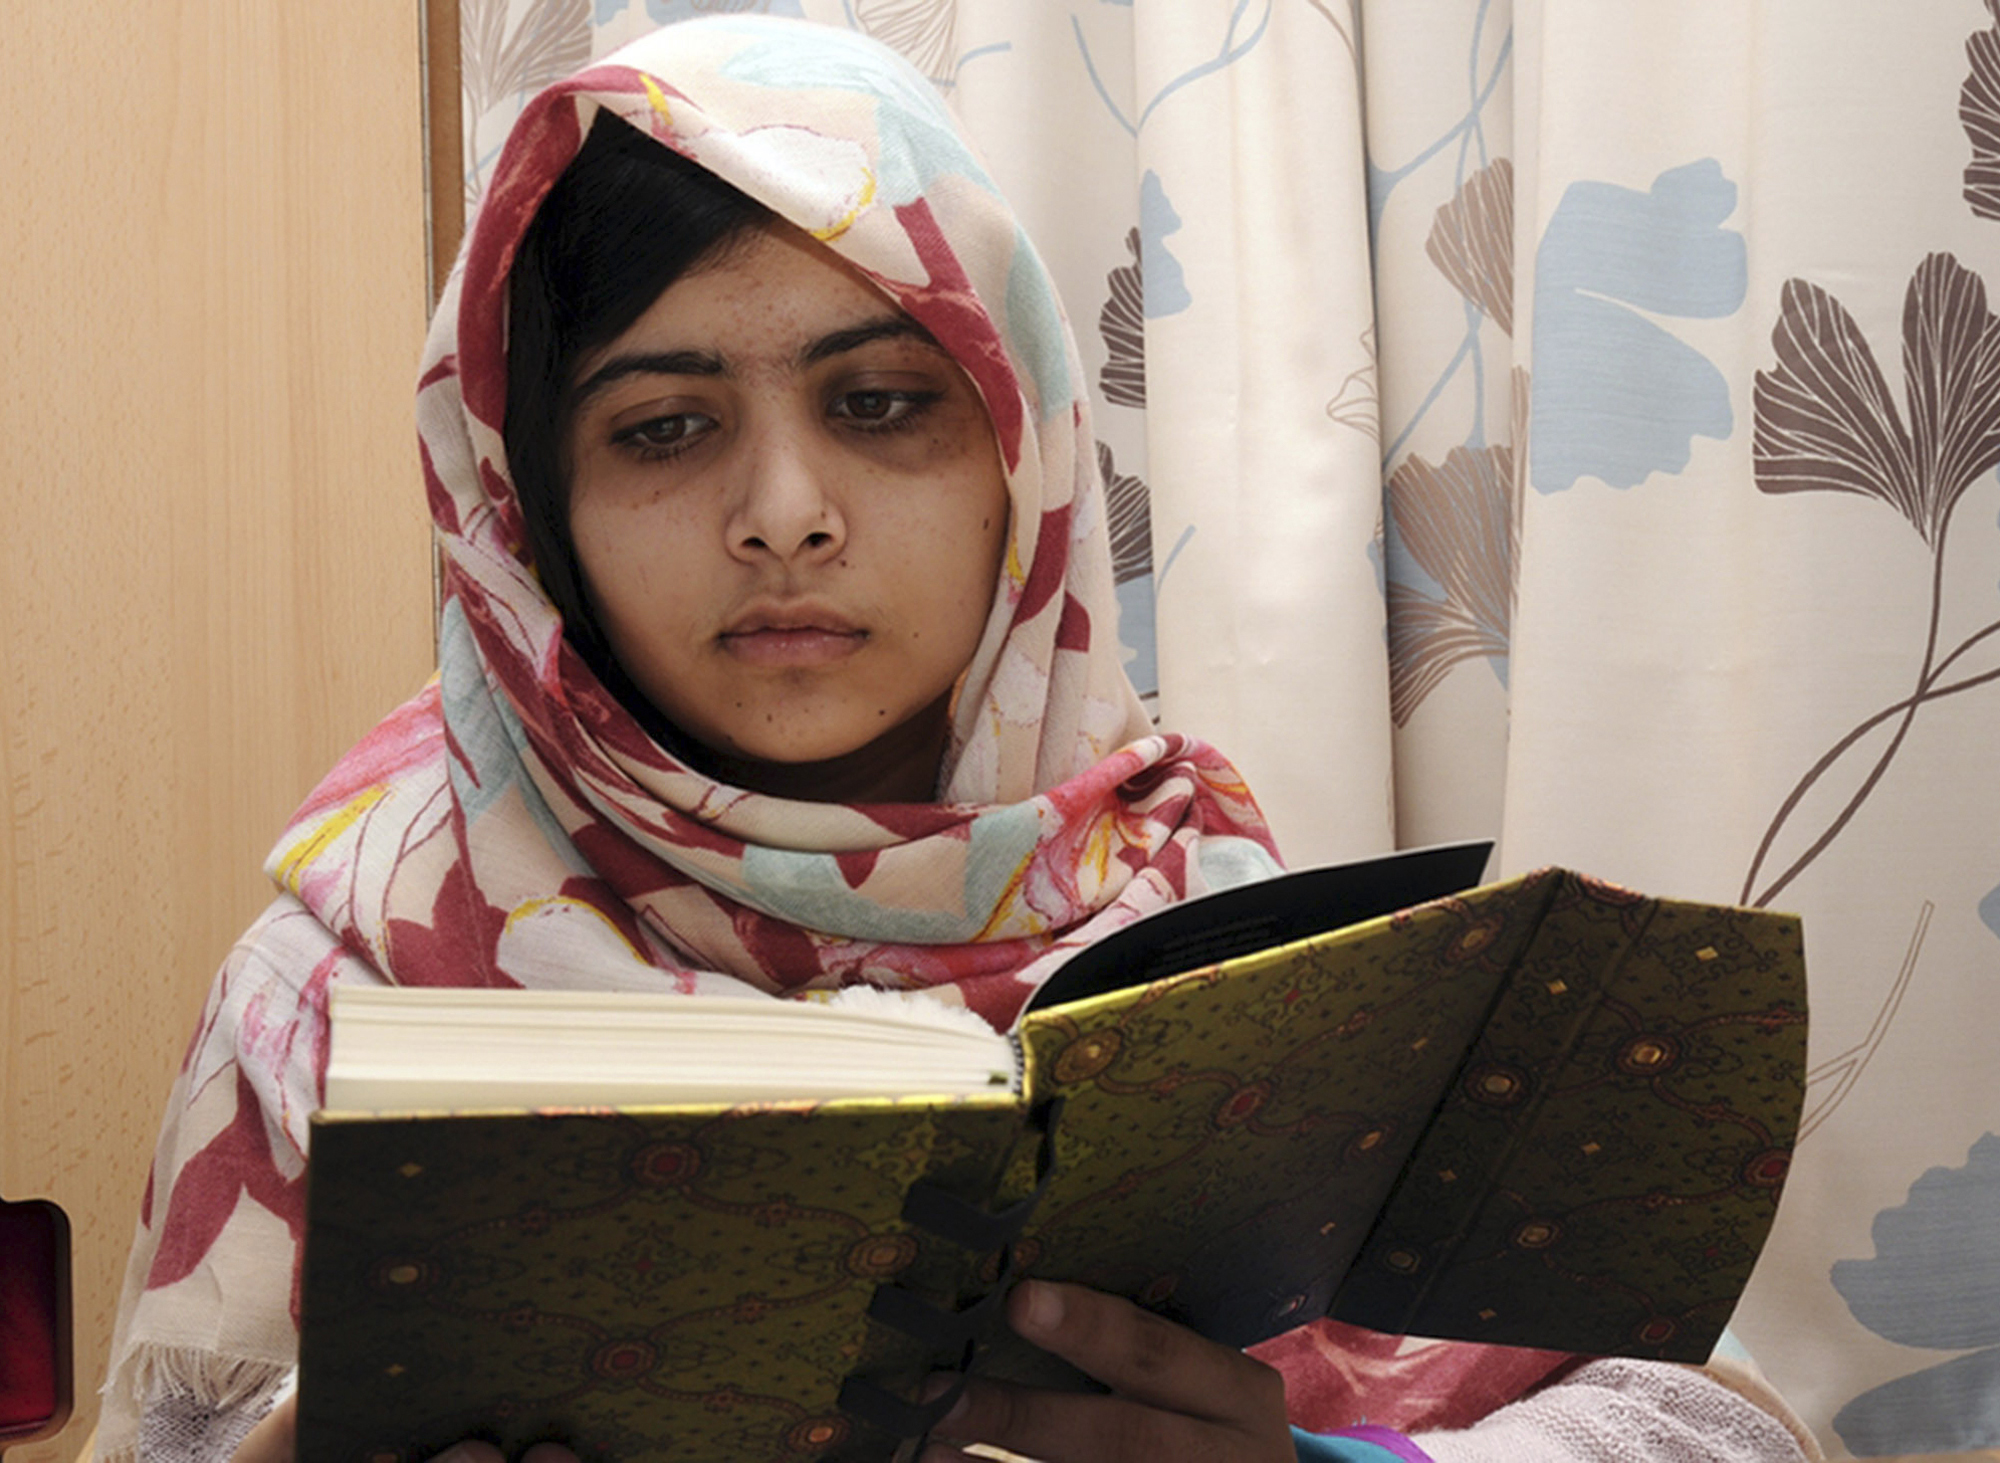 """FILE - In this undated file photo provided by Queen Elizabeth Hospital in Birmingham, England, Malala Yousufzai, the 15-year-old girl who was shot at close range in the head by a Taliban gunman in Pakistan, reads a book as she continues her recovery at the hospital. Malala Yousafzai, the Pakistani teenager shot in the head by the Taliban, is writing a memoir. Publisher Weidenfeld and Nicolson said Thursday March 28, 2013 it will release """"I am Malala"""" in Britain this fall. Little, Brown will publish it in the United States.A Taliban gunman shot Malala on Oct. 9, while she was on her way home from school in northwestern Pakistan. (AP Photo/Queen Elizabeth Hospital, File)"""